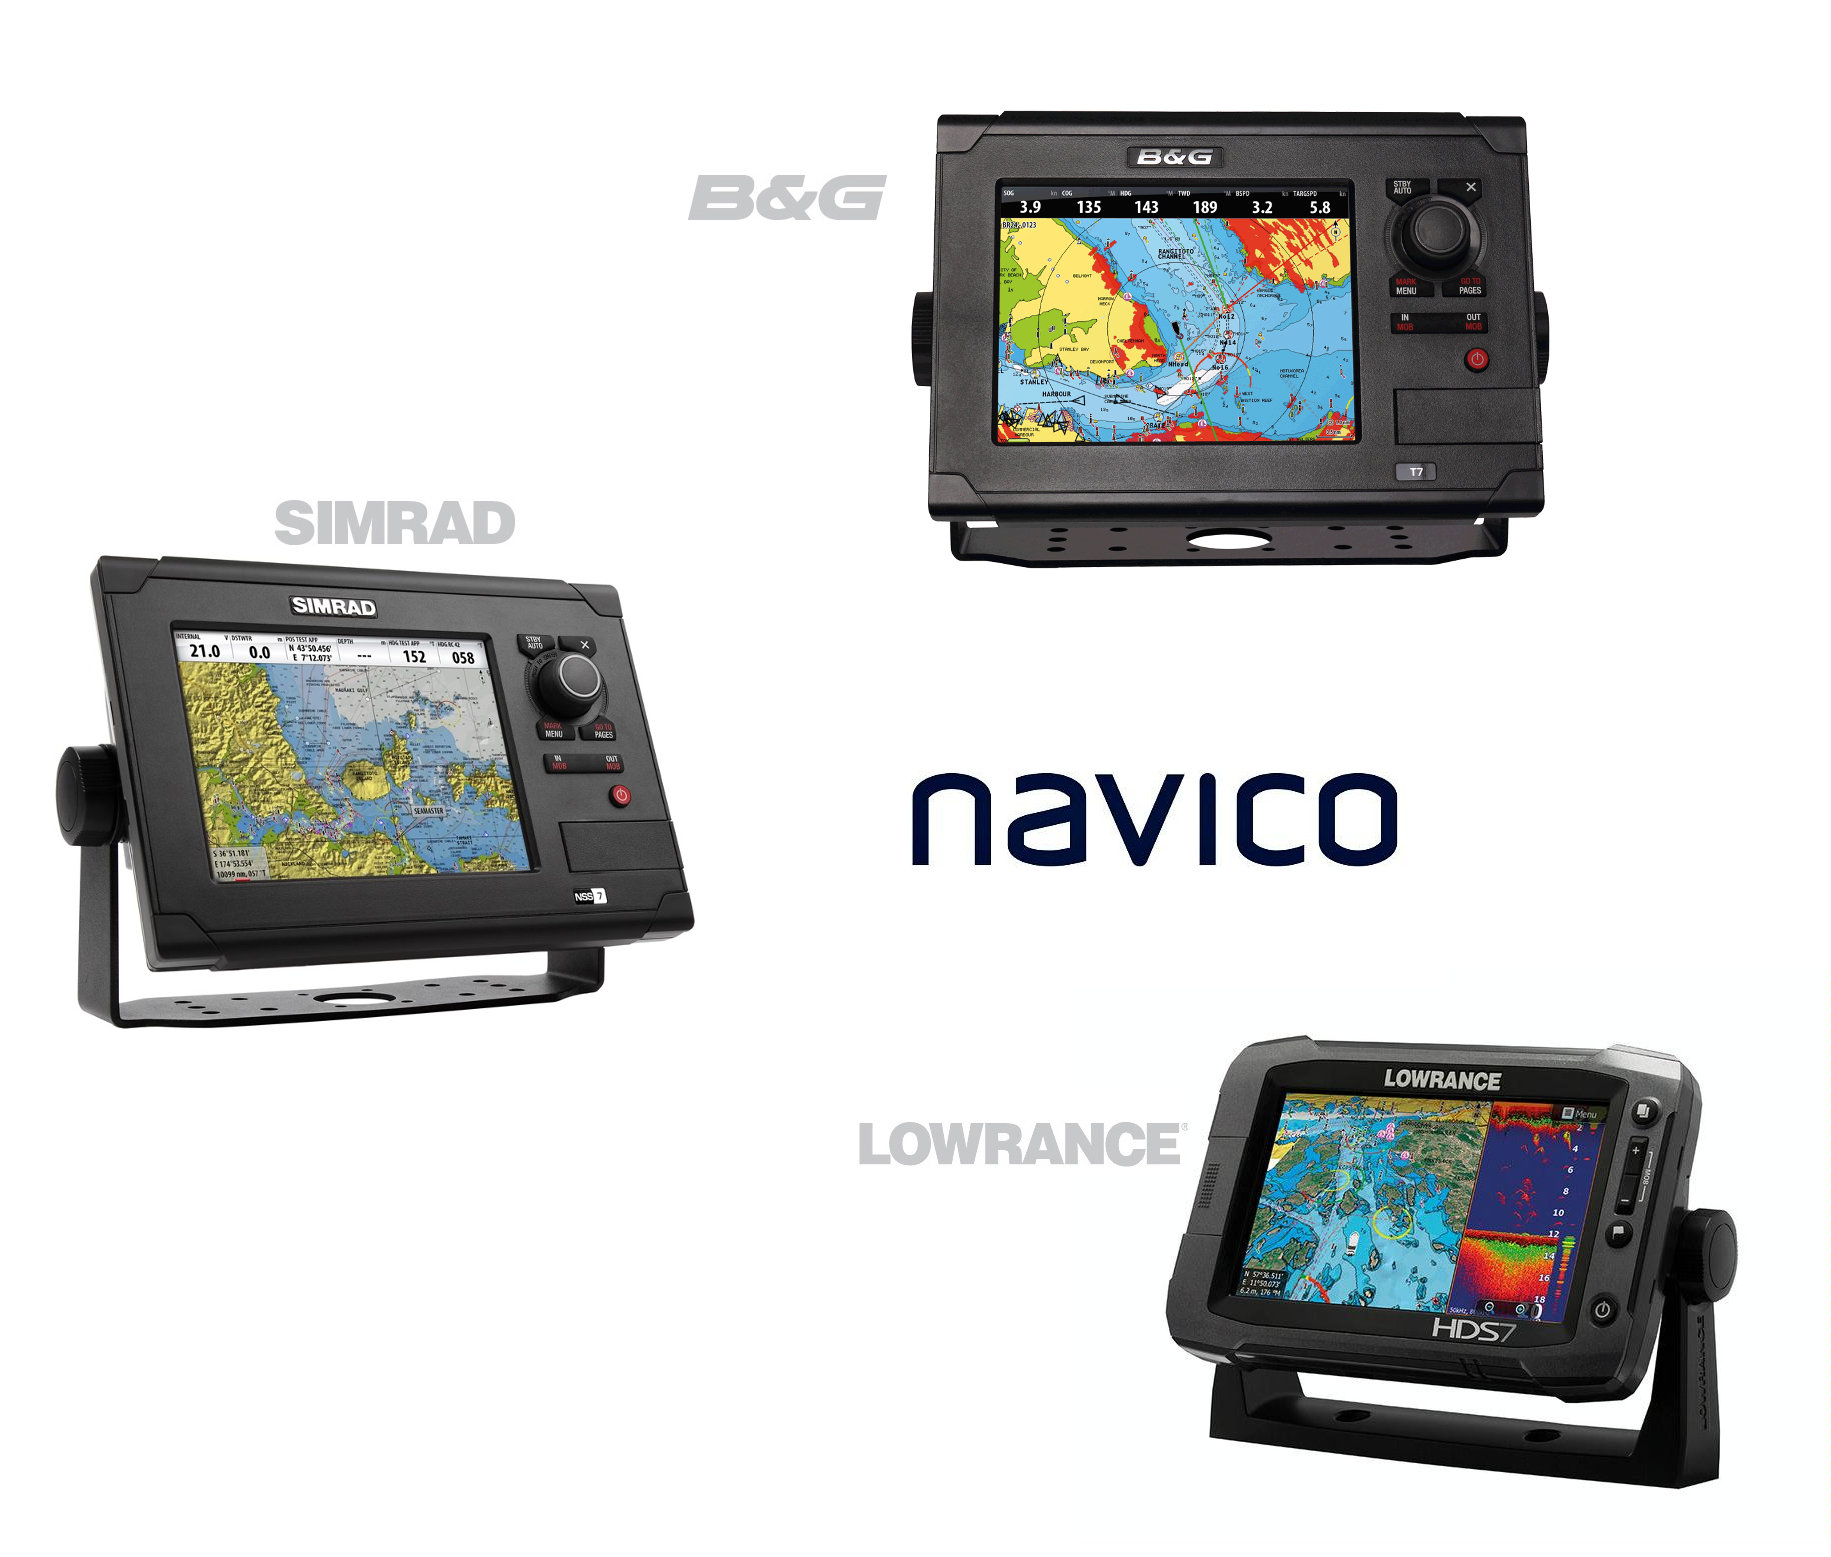 Garmin 182c Wiring Diagram Diagrams Data Base Nuvi Will Be A Thing U2022 Rh Thelondonartist Co On Gpsmap For Ais Nmea 0183 To Microphone